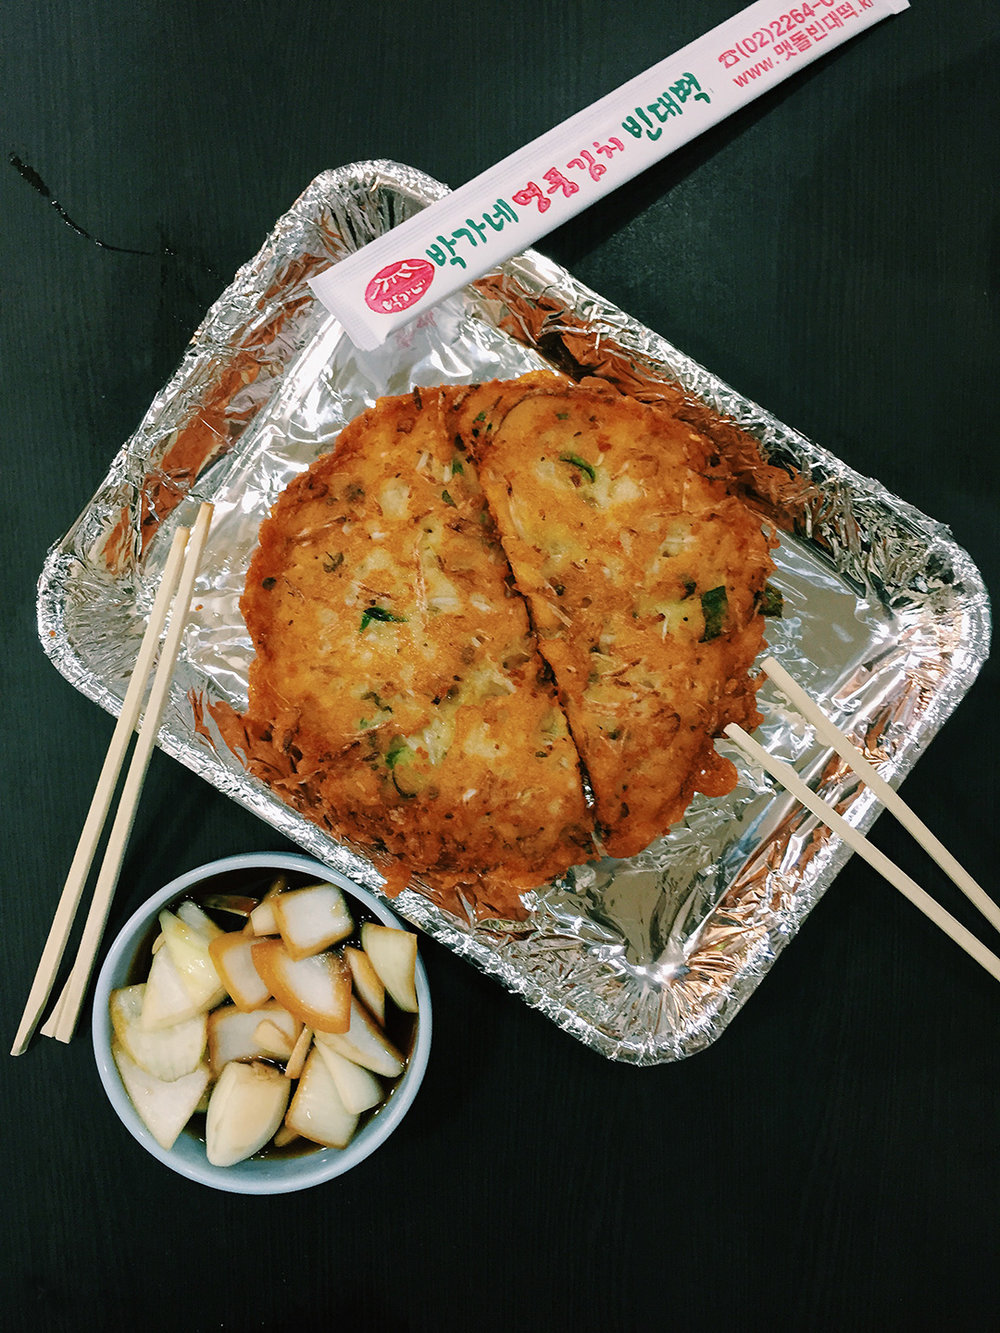 "The most popular food at Gwangjang Market is their ""jeon,"" or pancake. It's a dish that was meant to be eaten on rainy days, but is now enjoyed any day of the year. My absolute favorite is the Nokdu Jeon, or mung bean pancakes. It's crispy on the outside and soft on the inside, making it the ultimate savory treat! Dip it in the soy sauce and enjoy it with the soy sauce marinated onions. The combo is a match made in heaven! <3"